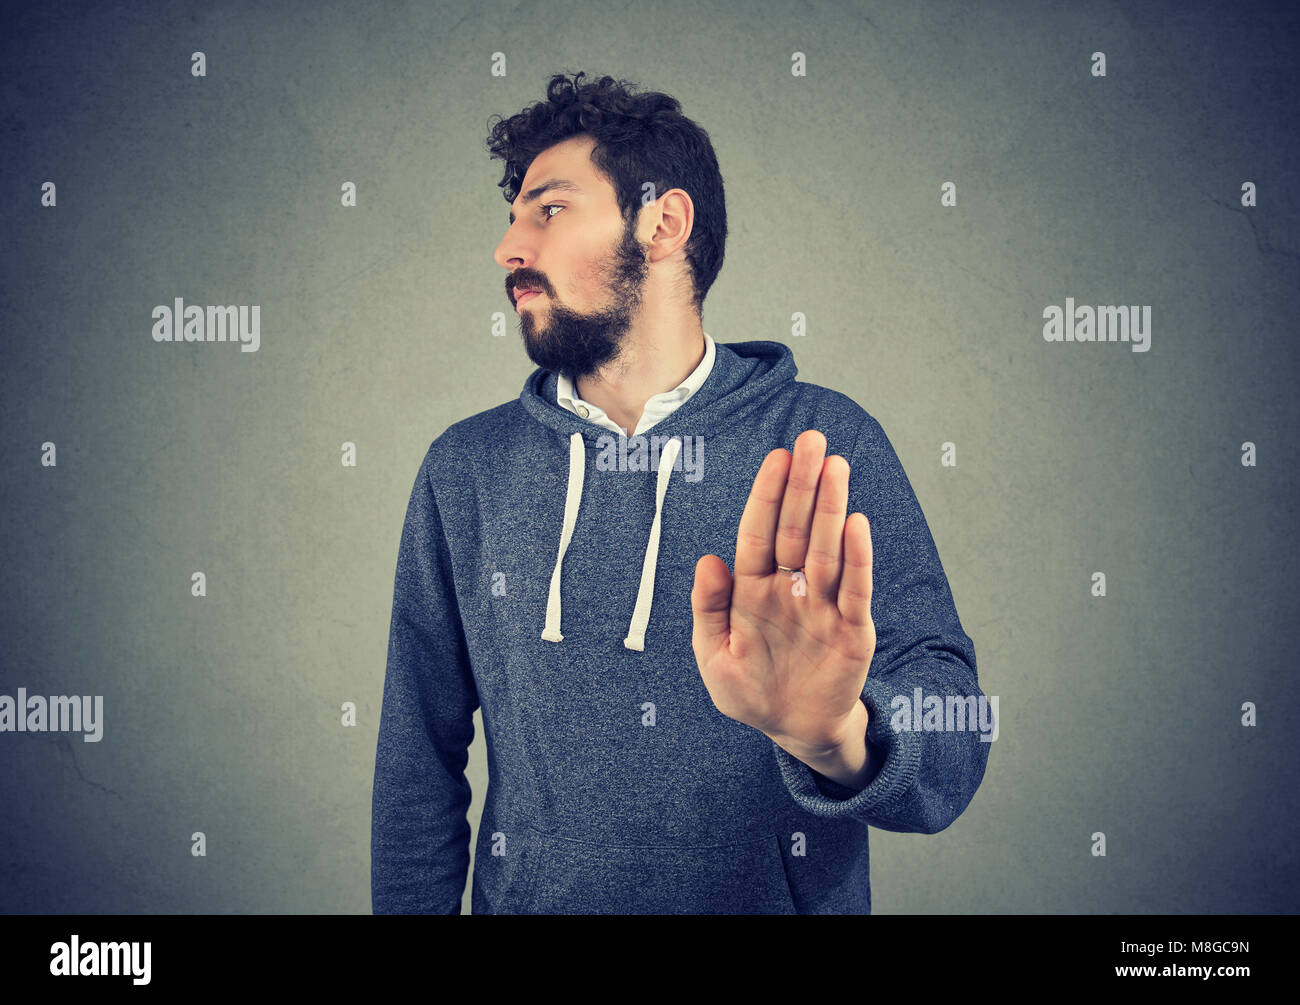 Annoyed angry man with bad attitude giving talk to hand gesture isolated on gray background. Negative emotion face - Stock Image